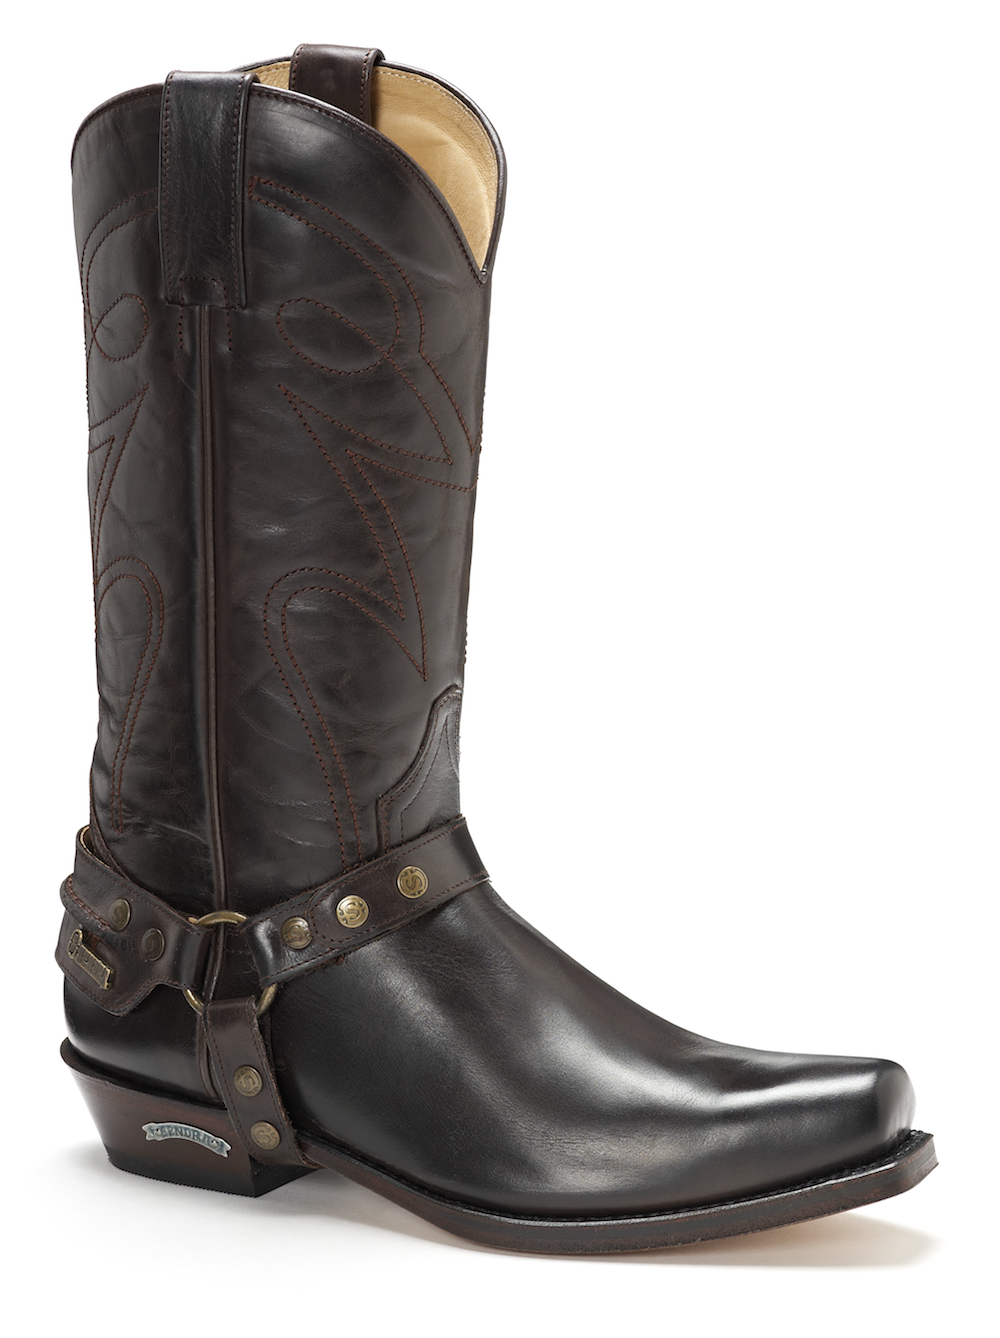 2bbbcba218c Mens Sendra 4306 Brown Harness Boot in 2019 | Boots men | Boots ...